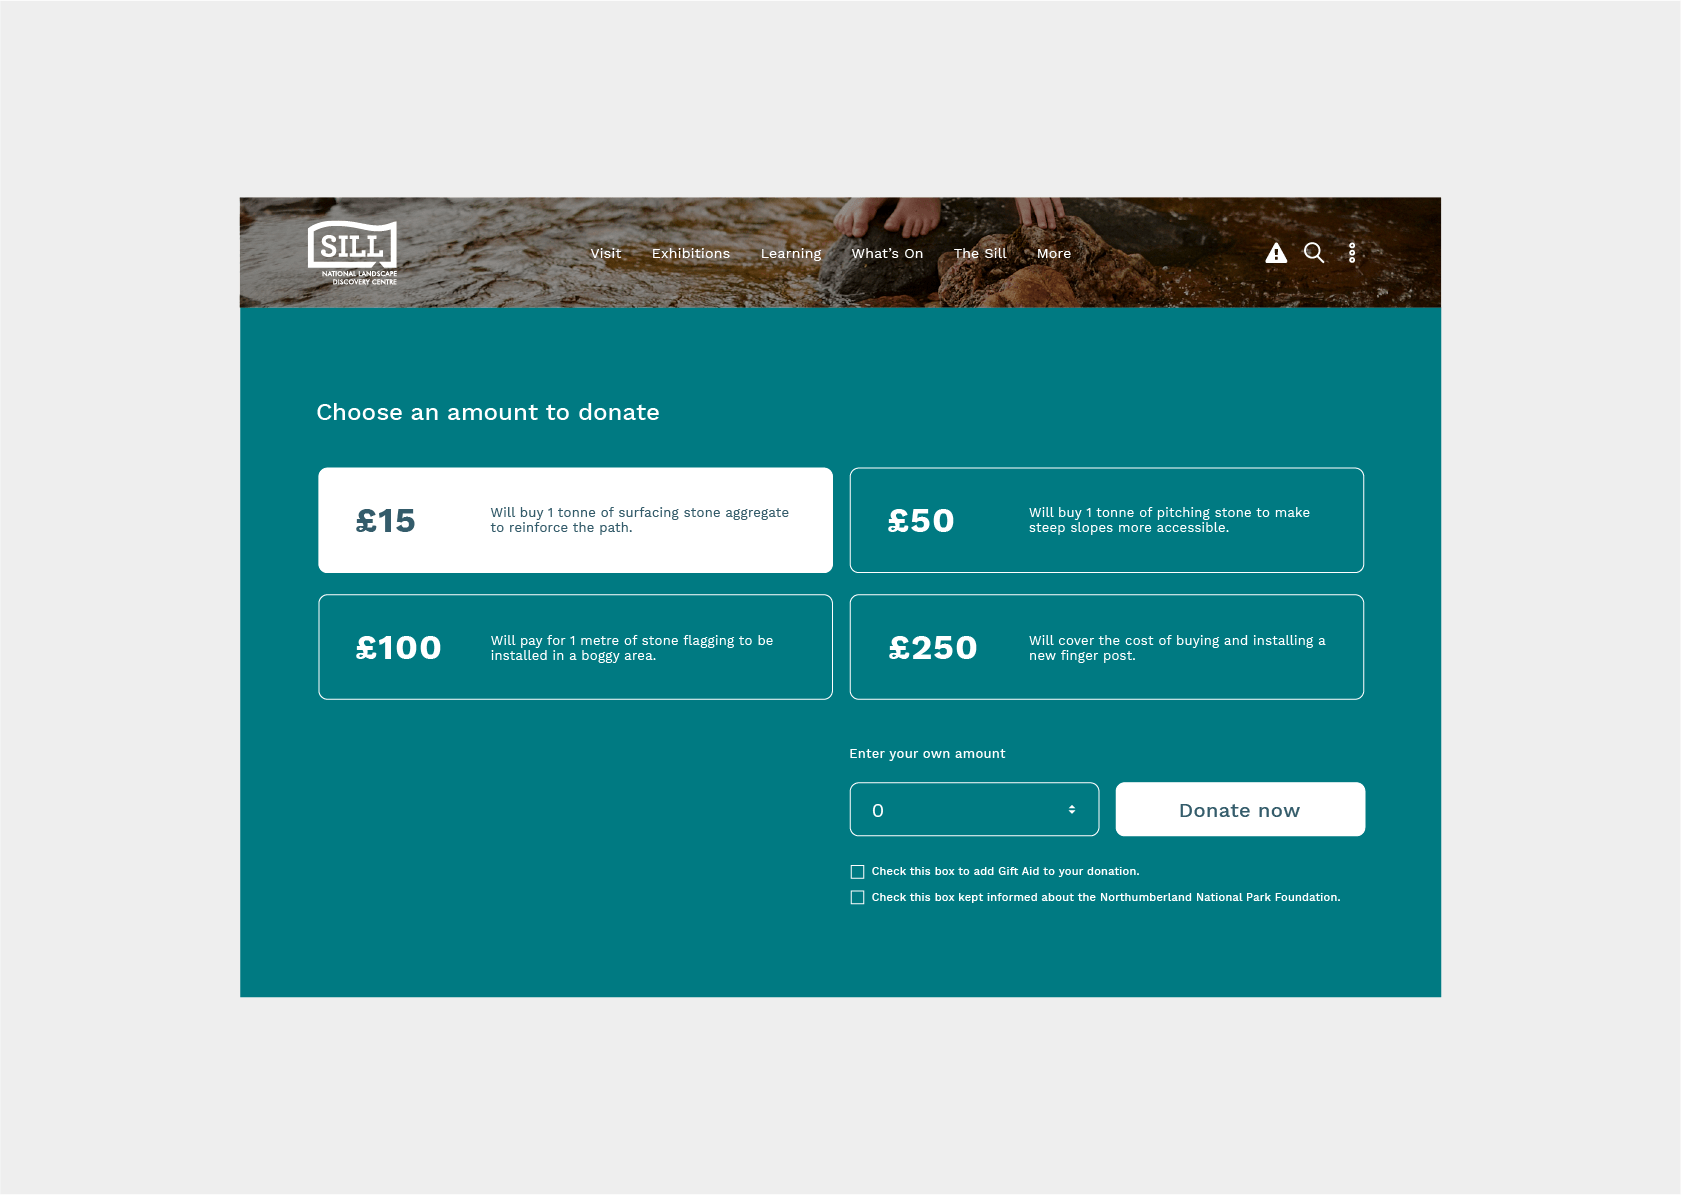 Donation functionality for Northumberland National Park